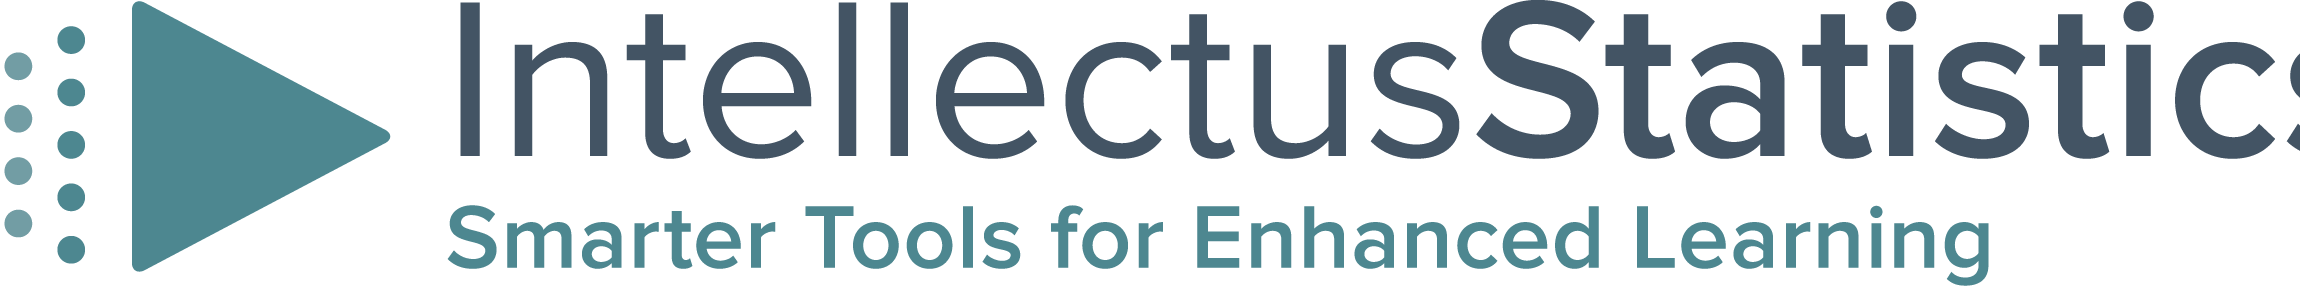 NAGPS has partnered with Intellectus Statistics to provide our members with access to premium resources to assist with your academic research. Intellectus is offering NAGPS members a substantial discount to…